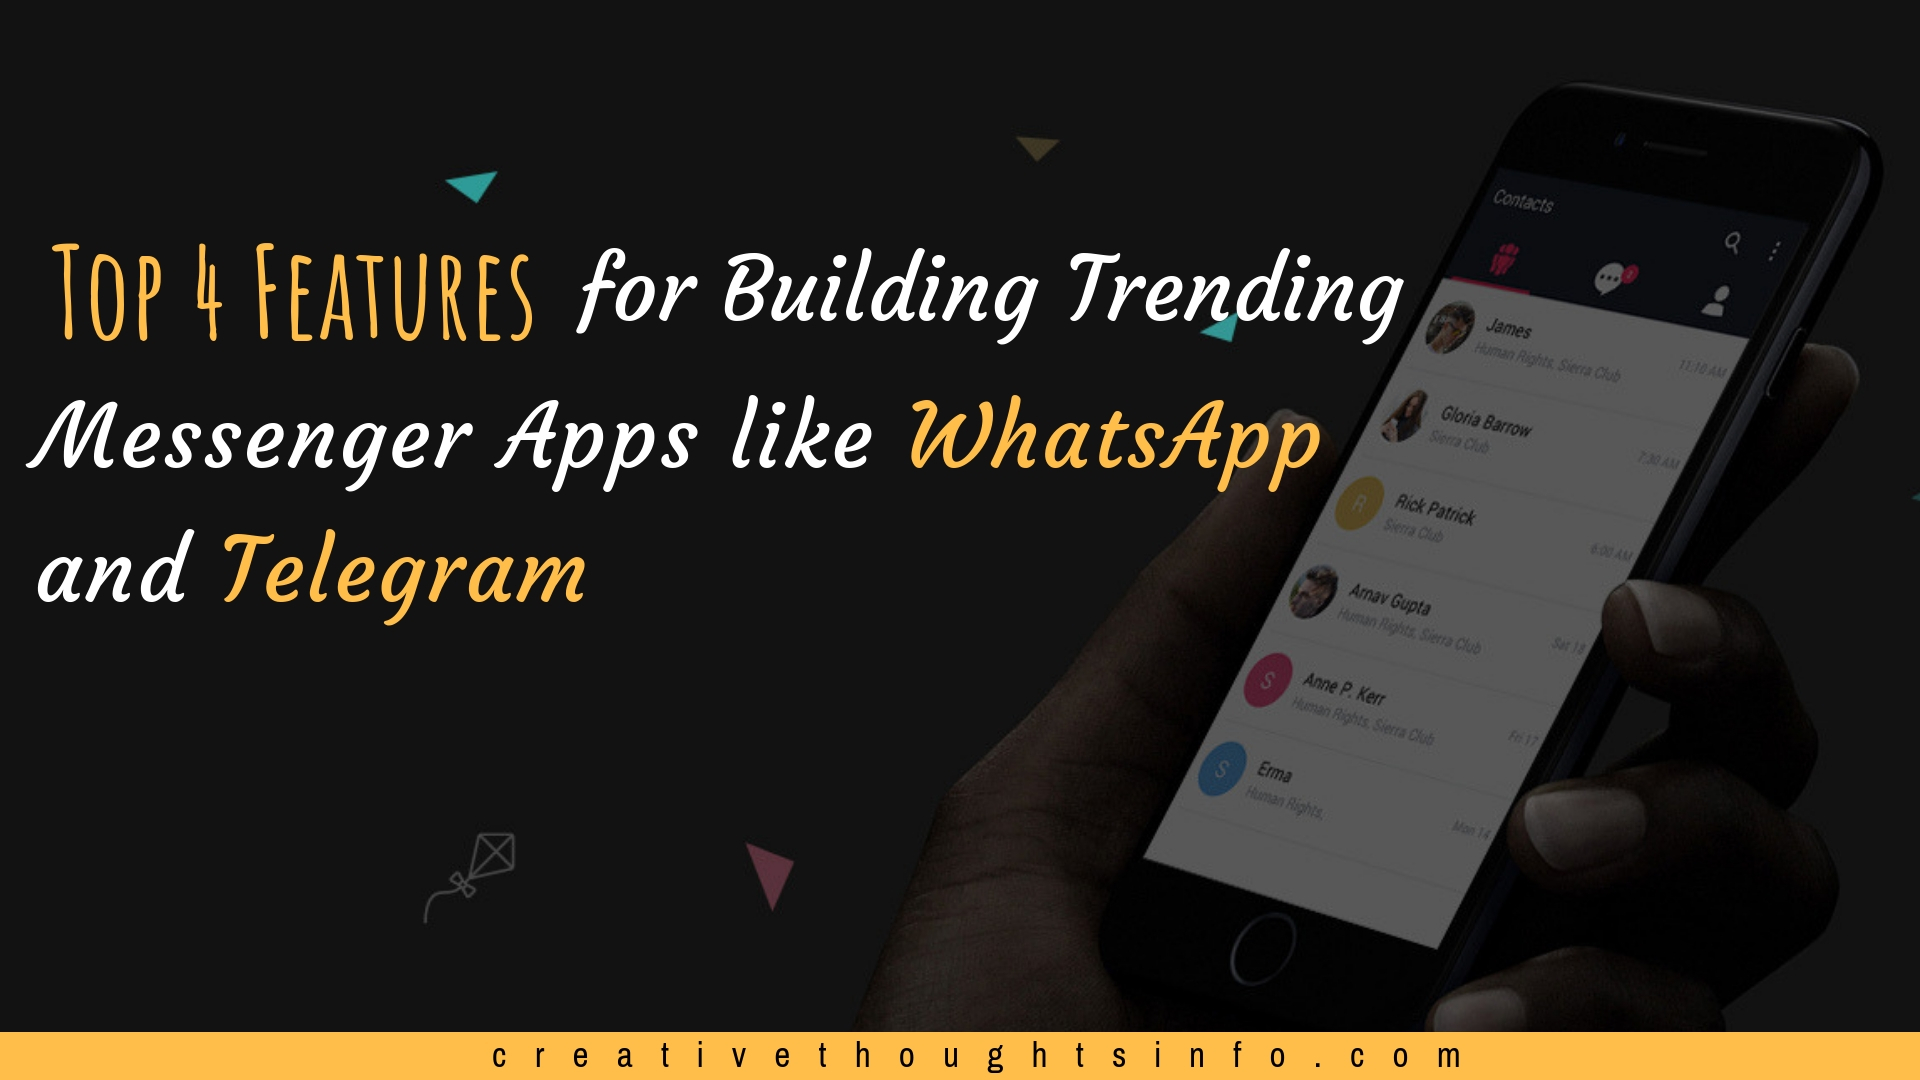 Top 4 Features for Building Trending Messenger Apps like WhatsApp and Telegram - Image 1